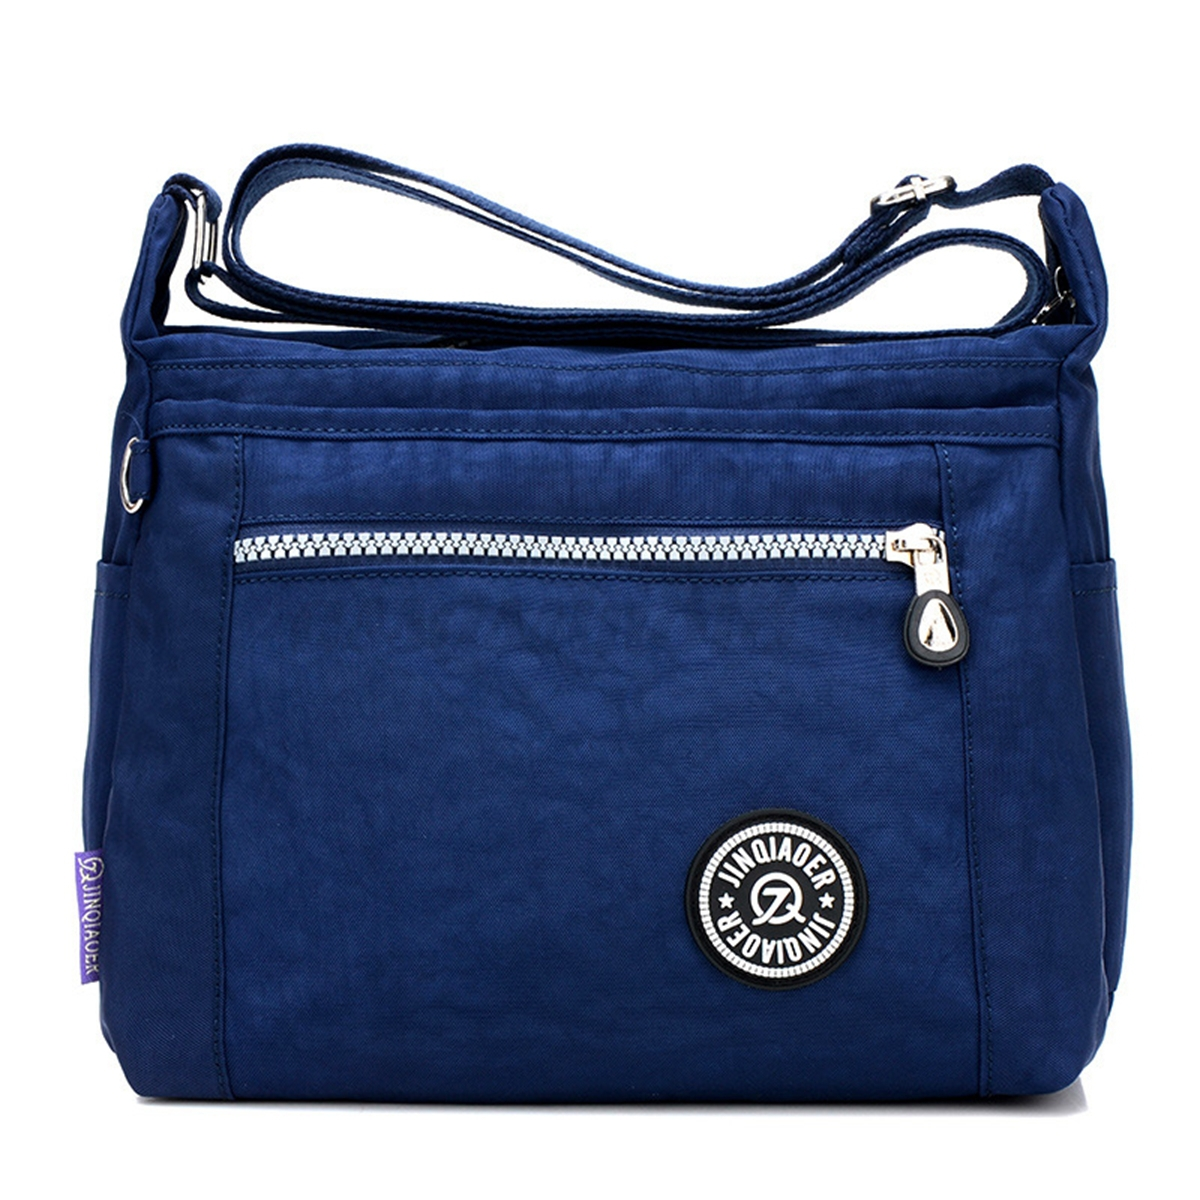 Shop eBay for great deals on Women's Nylon Messenger/Shoulder Bags. You'll find new or used products in Women's Nylon Messenger/Shoulder Bags on eBay. Free shipping on selected items.